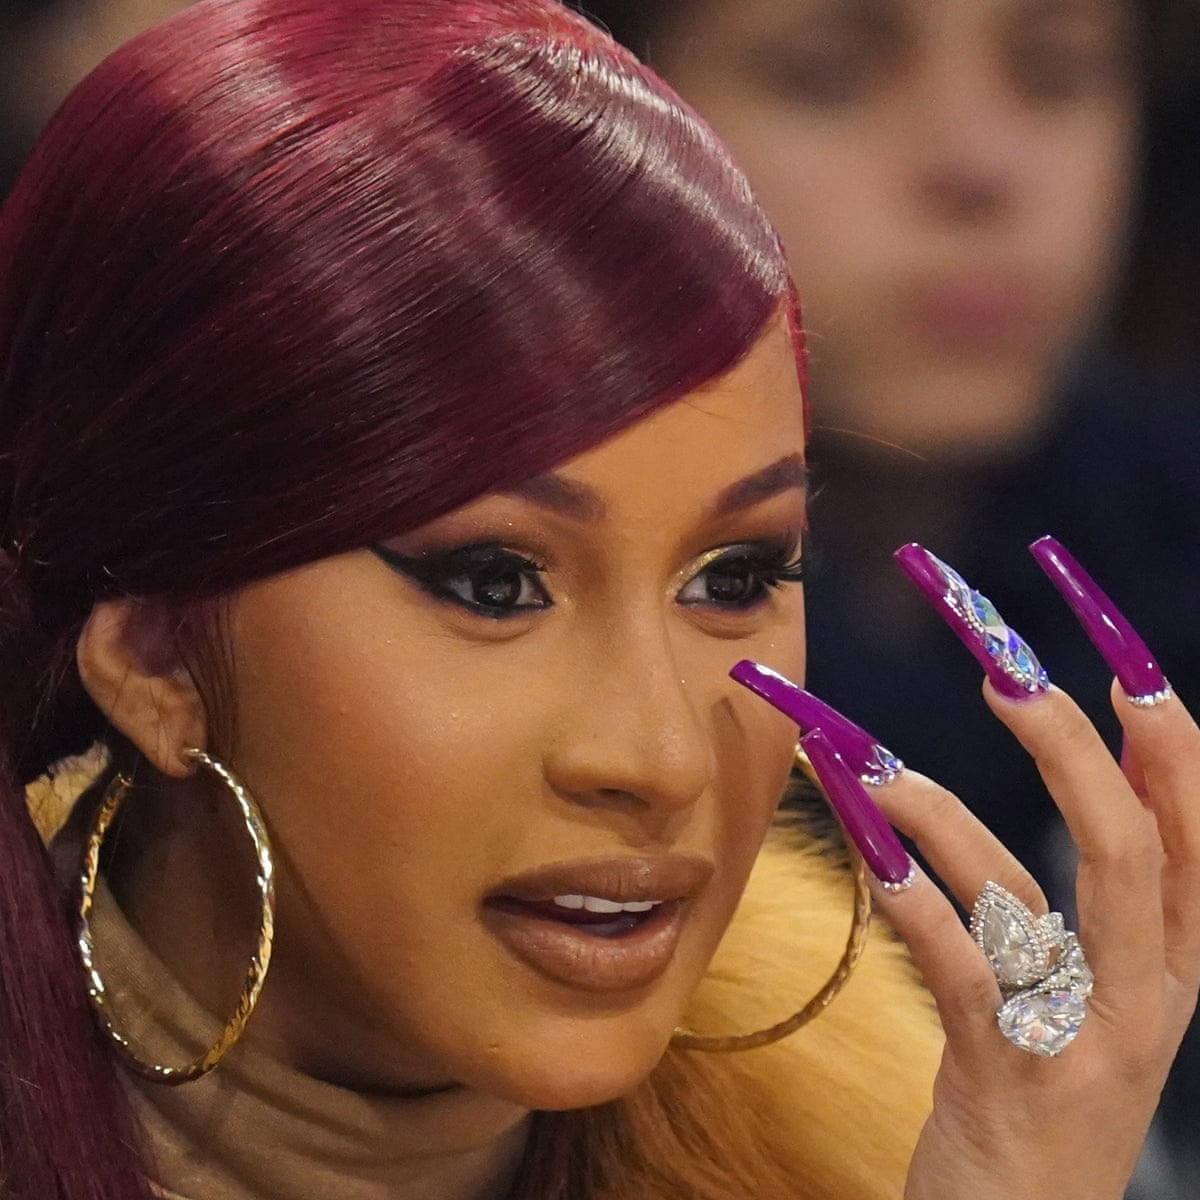 Cardi B Apologises For Supporting Armenia Fundraiser After Backlash Cardi B The Guardian Discover the magic of the internet at imgur, a community powered entertainment destination. cardi b apologises for supporting